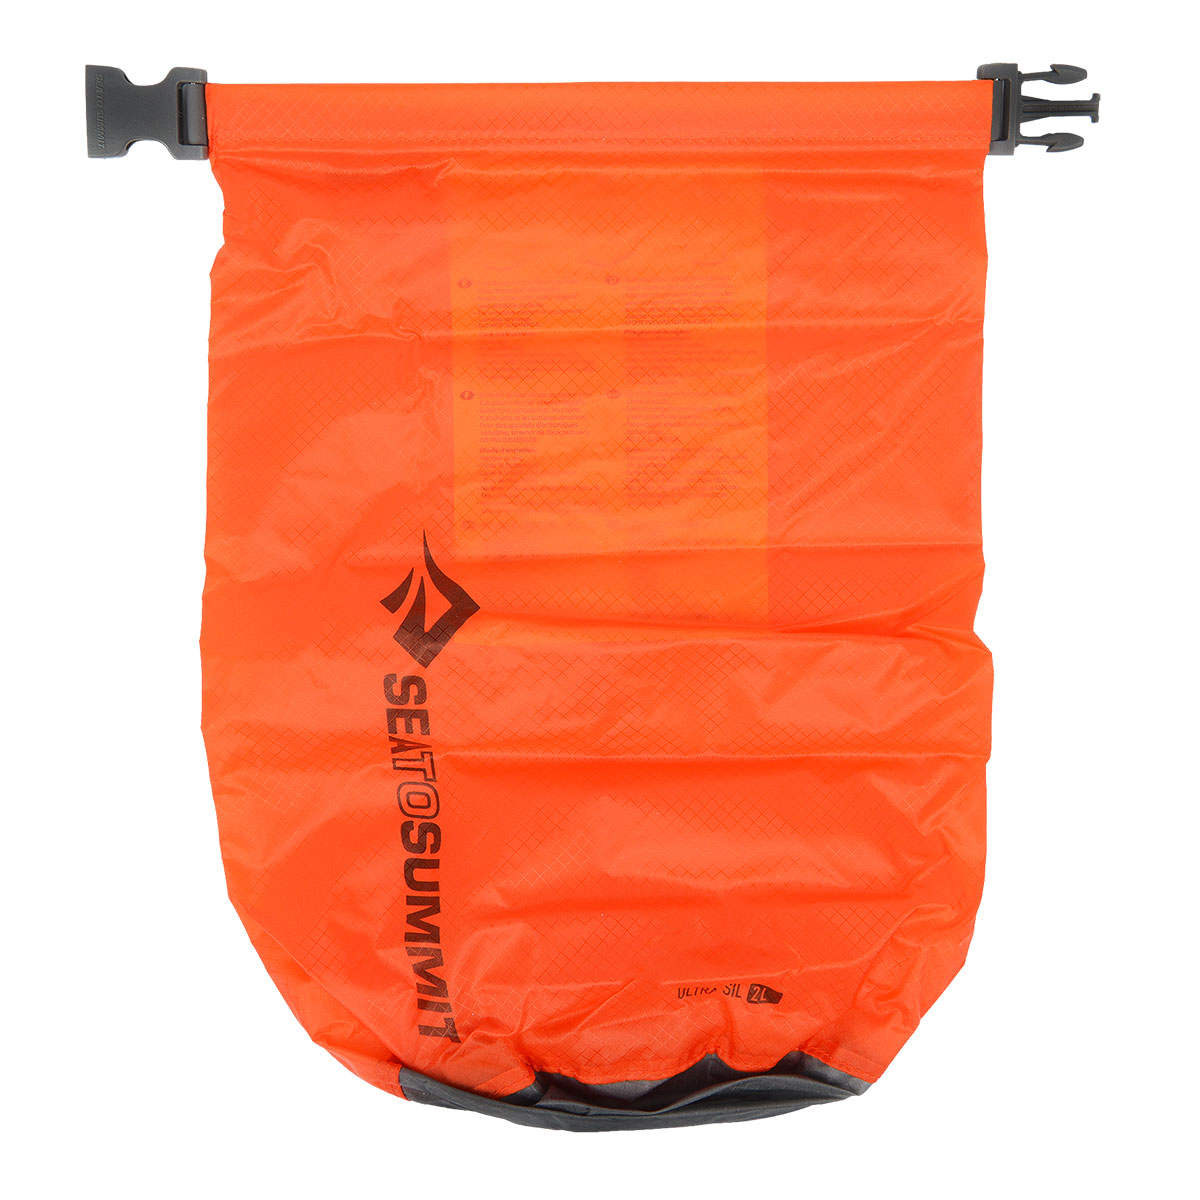 SEA TO SUMMIT Ultra-Sil Drysack 2 Liter Orange im Pareyshop